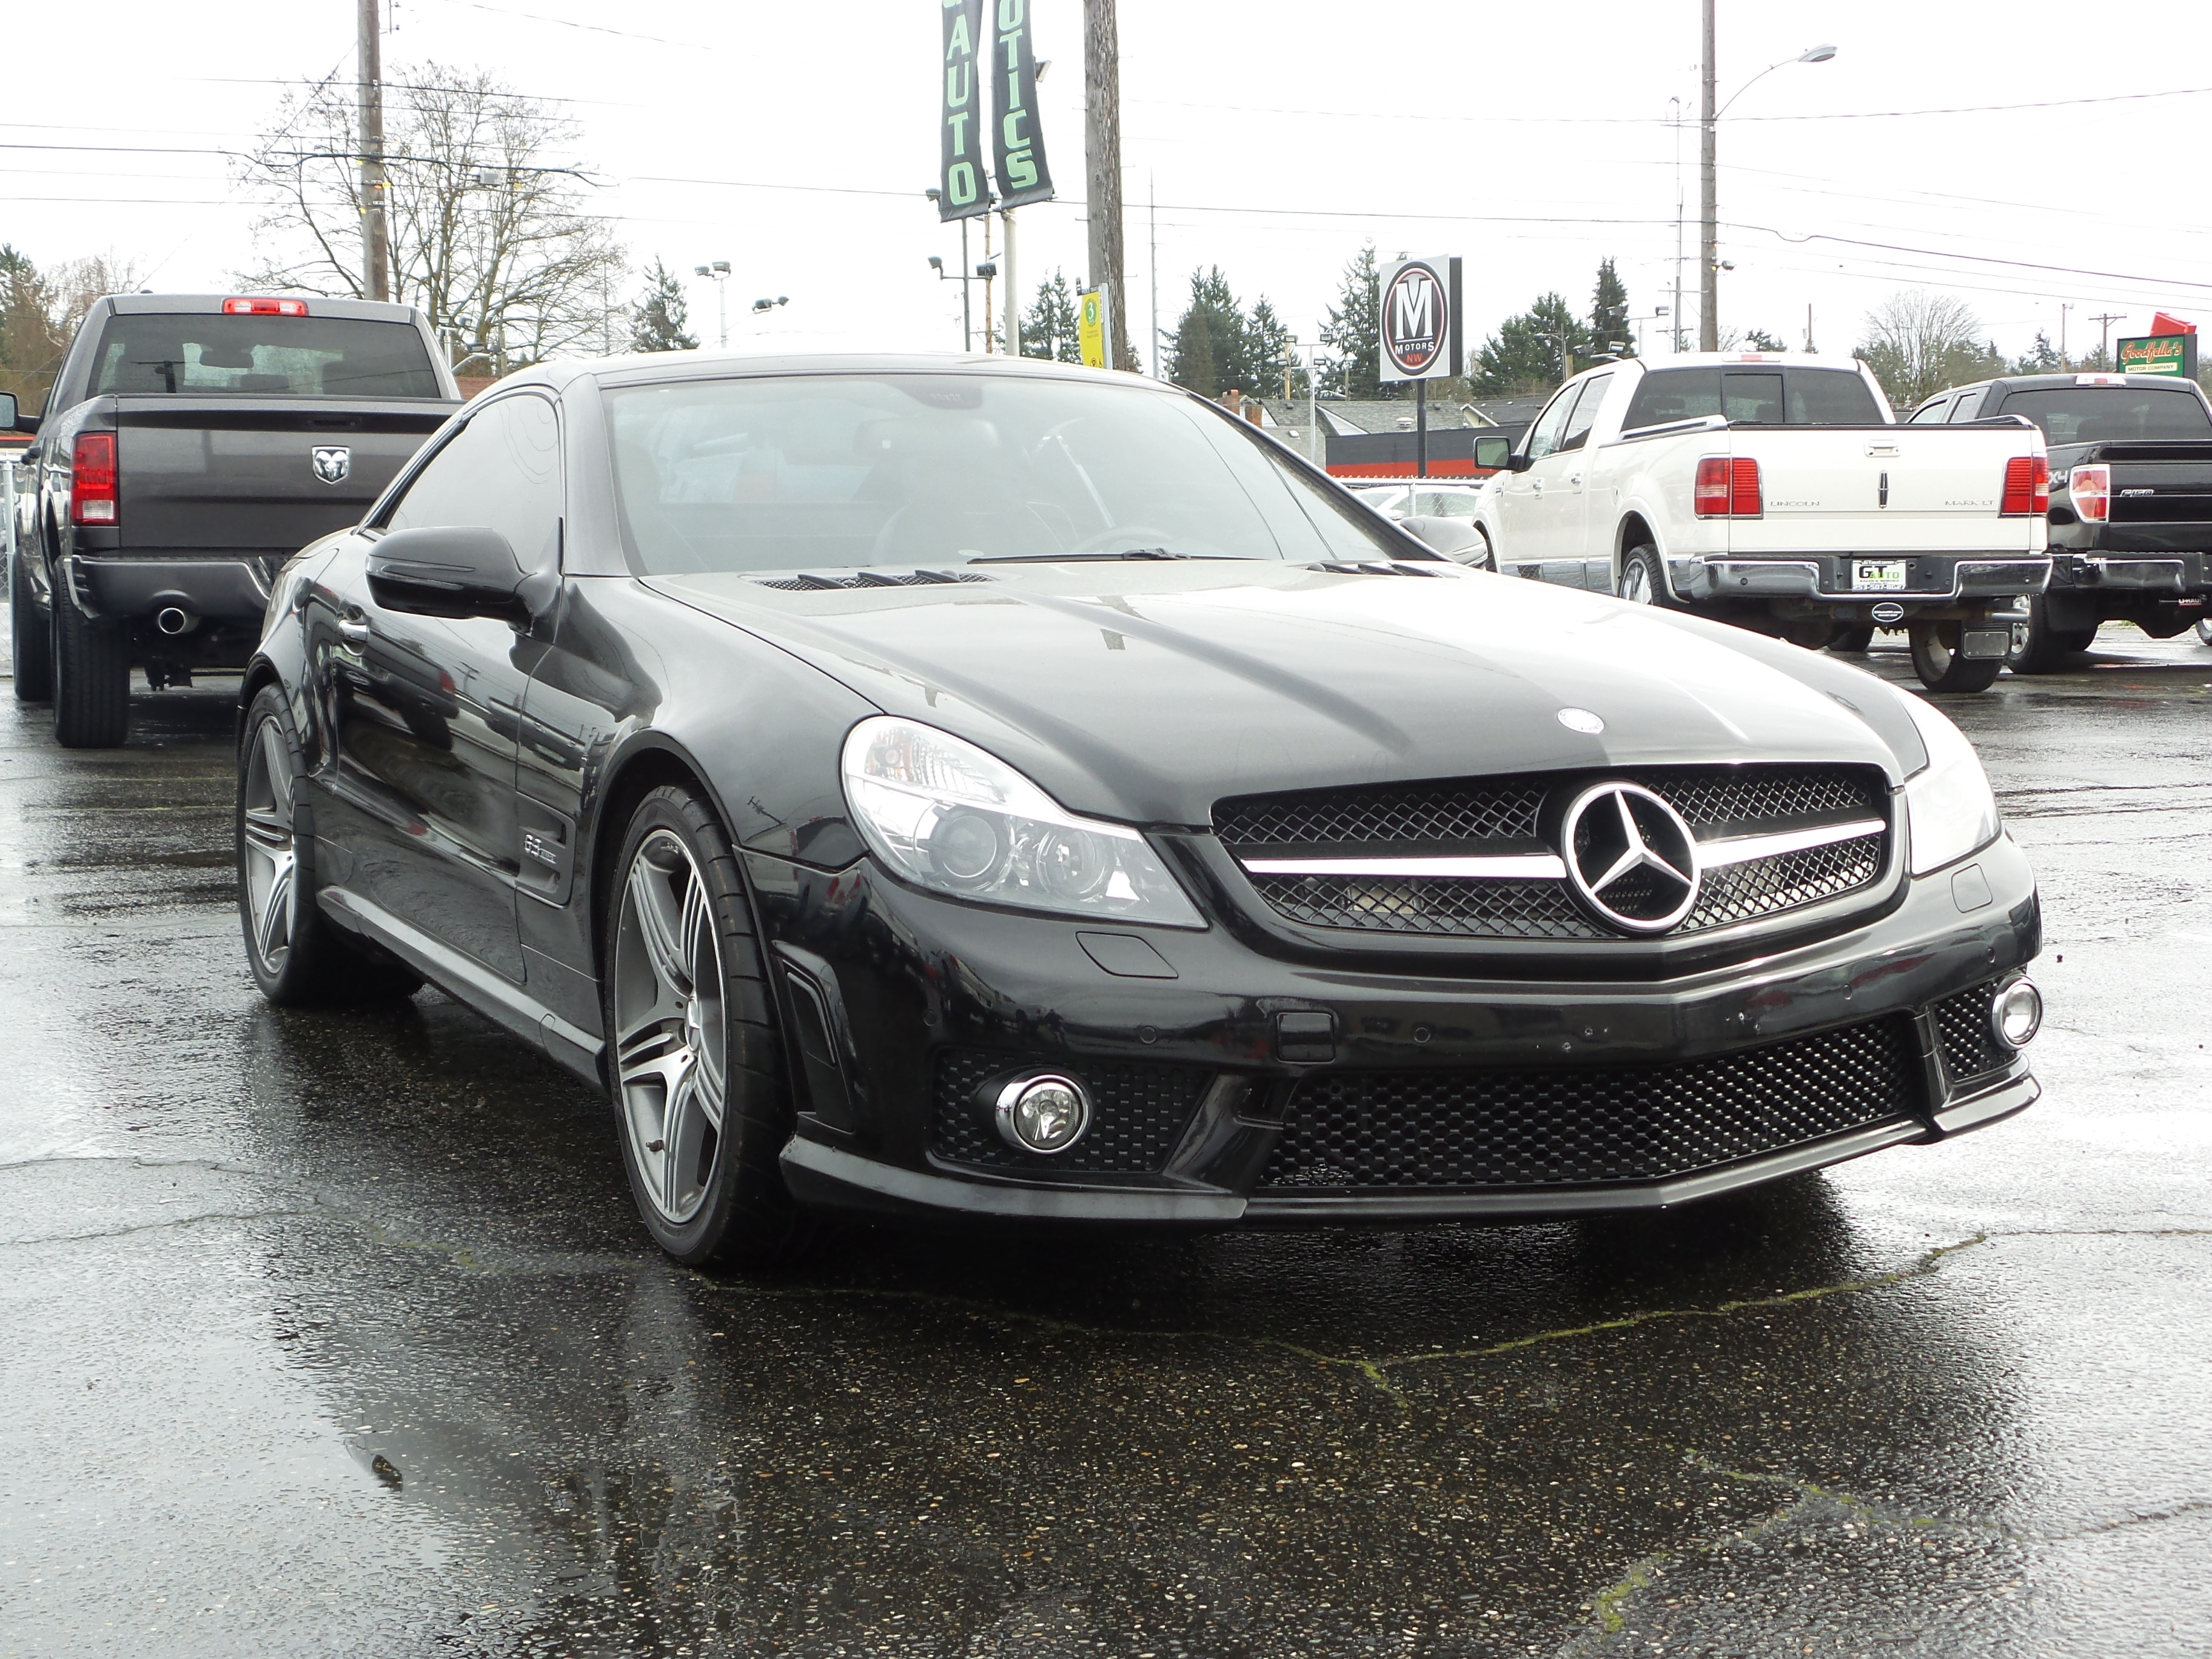 vehicles eclass class used mercedes benz convertible cabriolet vancouver autoform e mercedesbenz